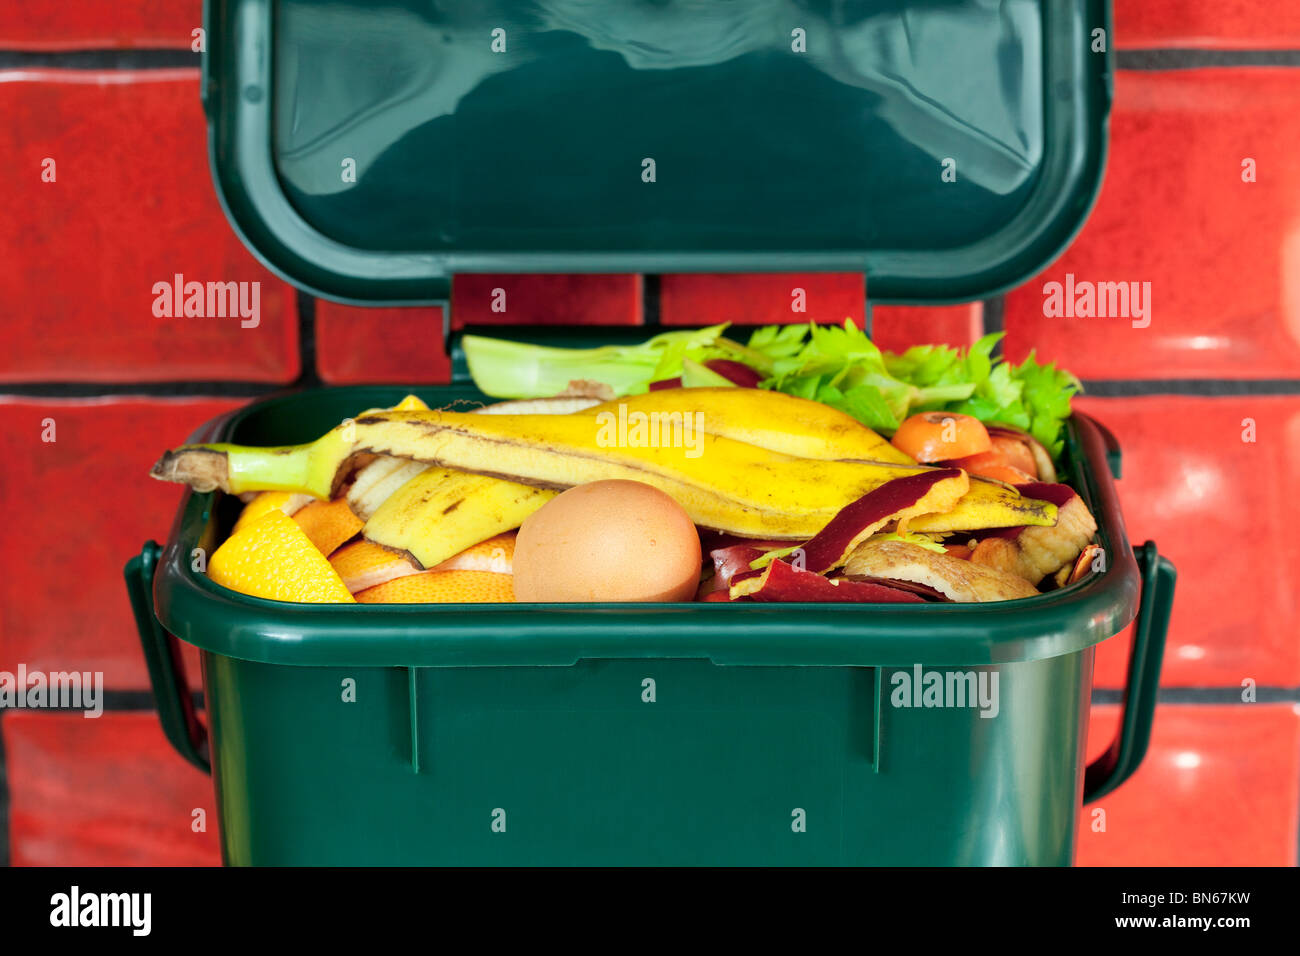 food-waste-for-composting-in-domestic-re